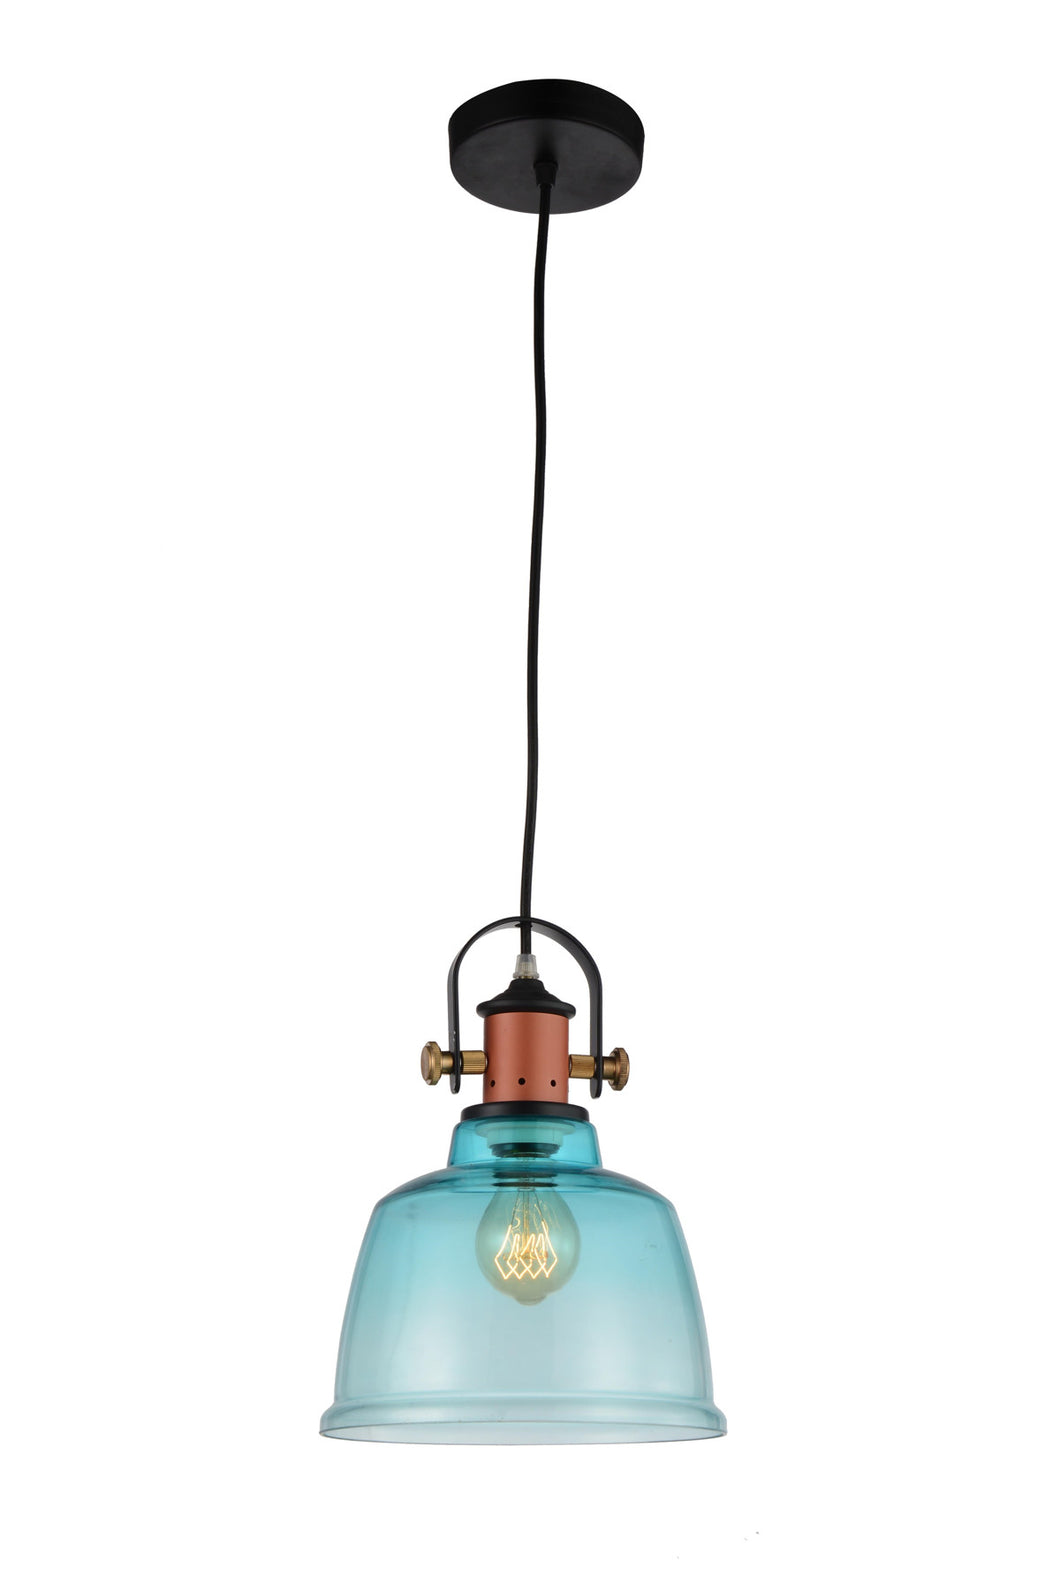 1 Light Down Pendant with Blue finish